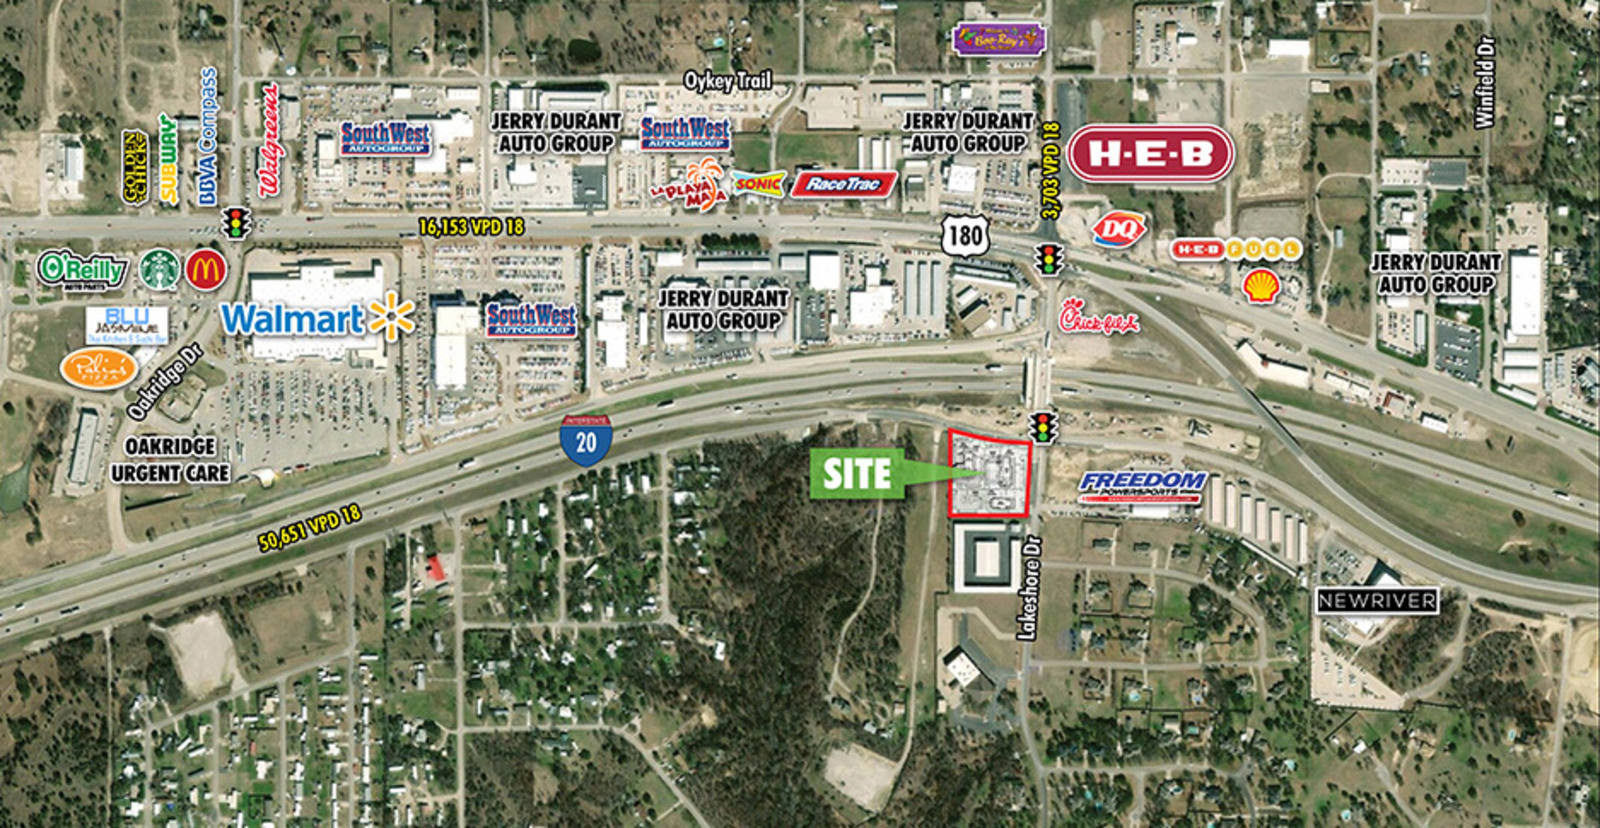 CBRE Retail2.8-Acre Hudson Oaks, TX Pad SiteSWC Lakeshore Dr & I-20  Photo